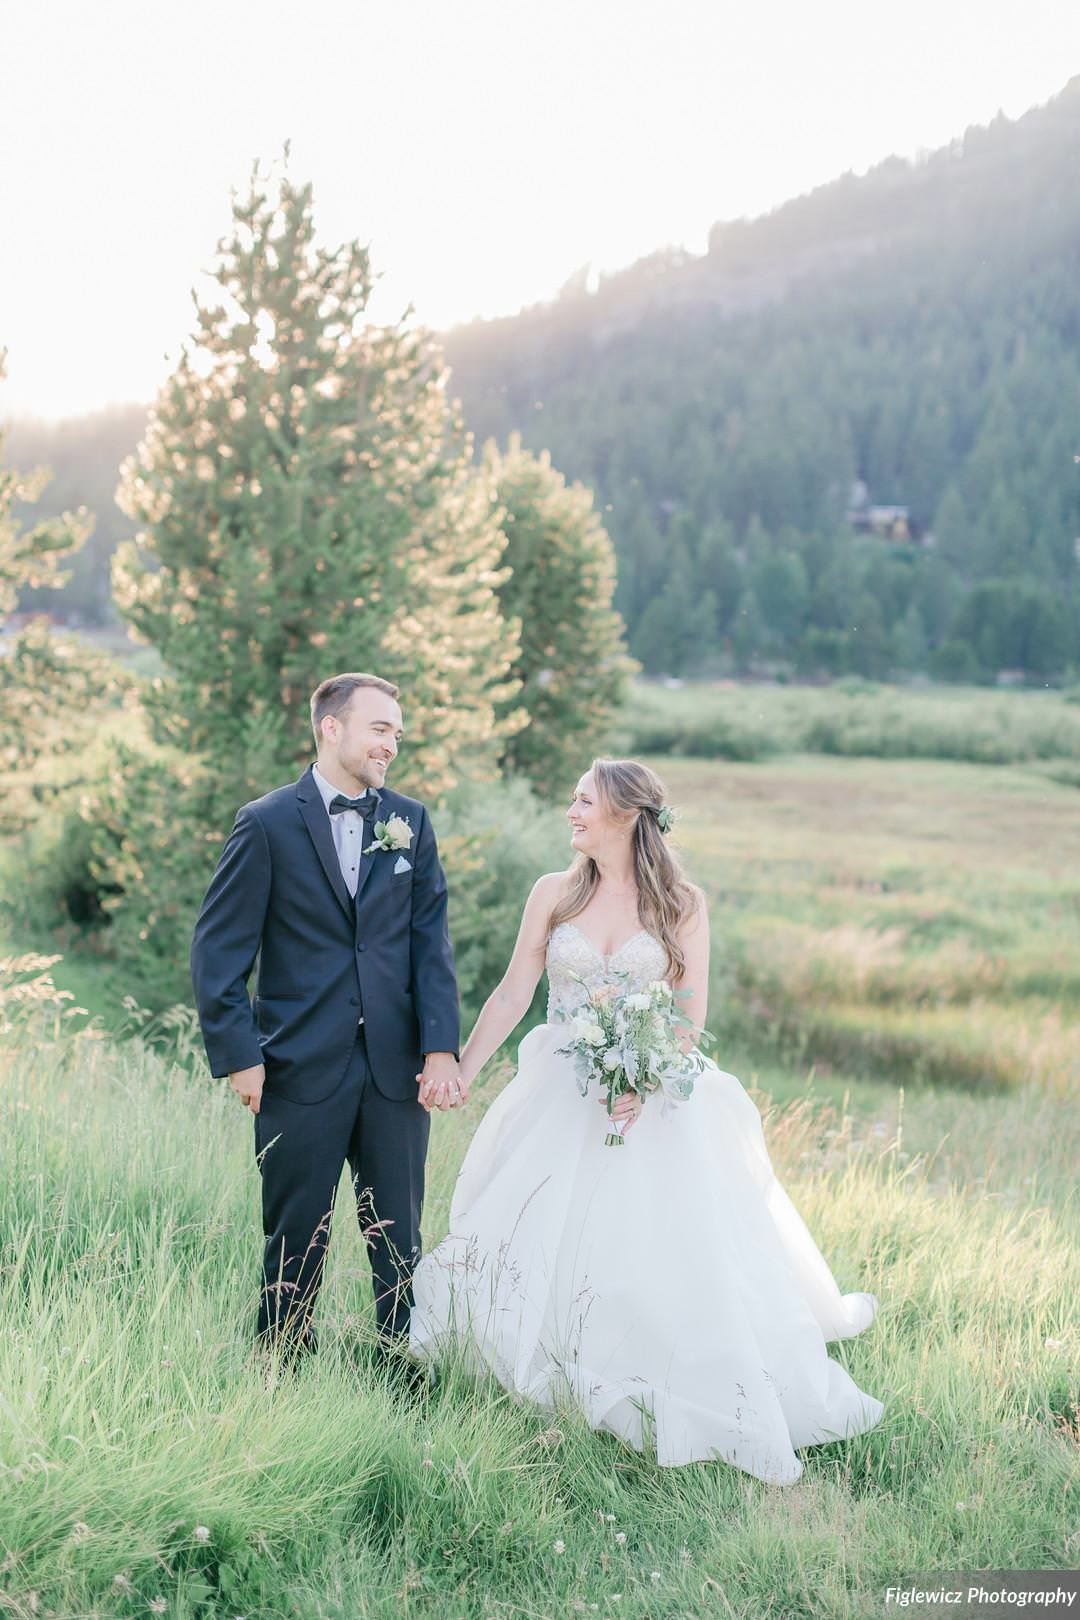 Garden_Tinsley_FiglewiczPhotography_LakeTahoeWeddingSquawValleyCreekTaylorBrendan00142_big